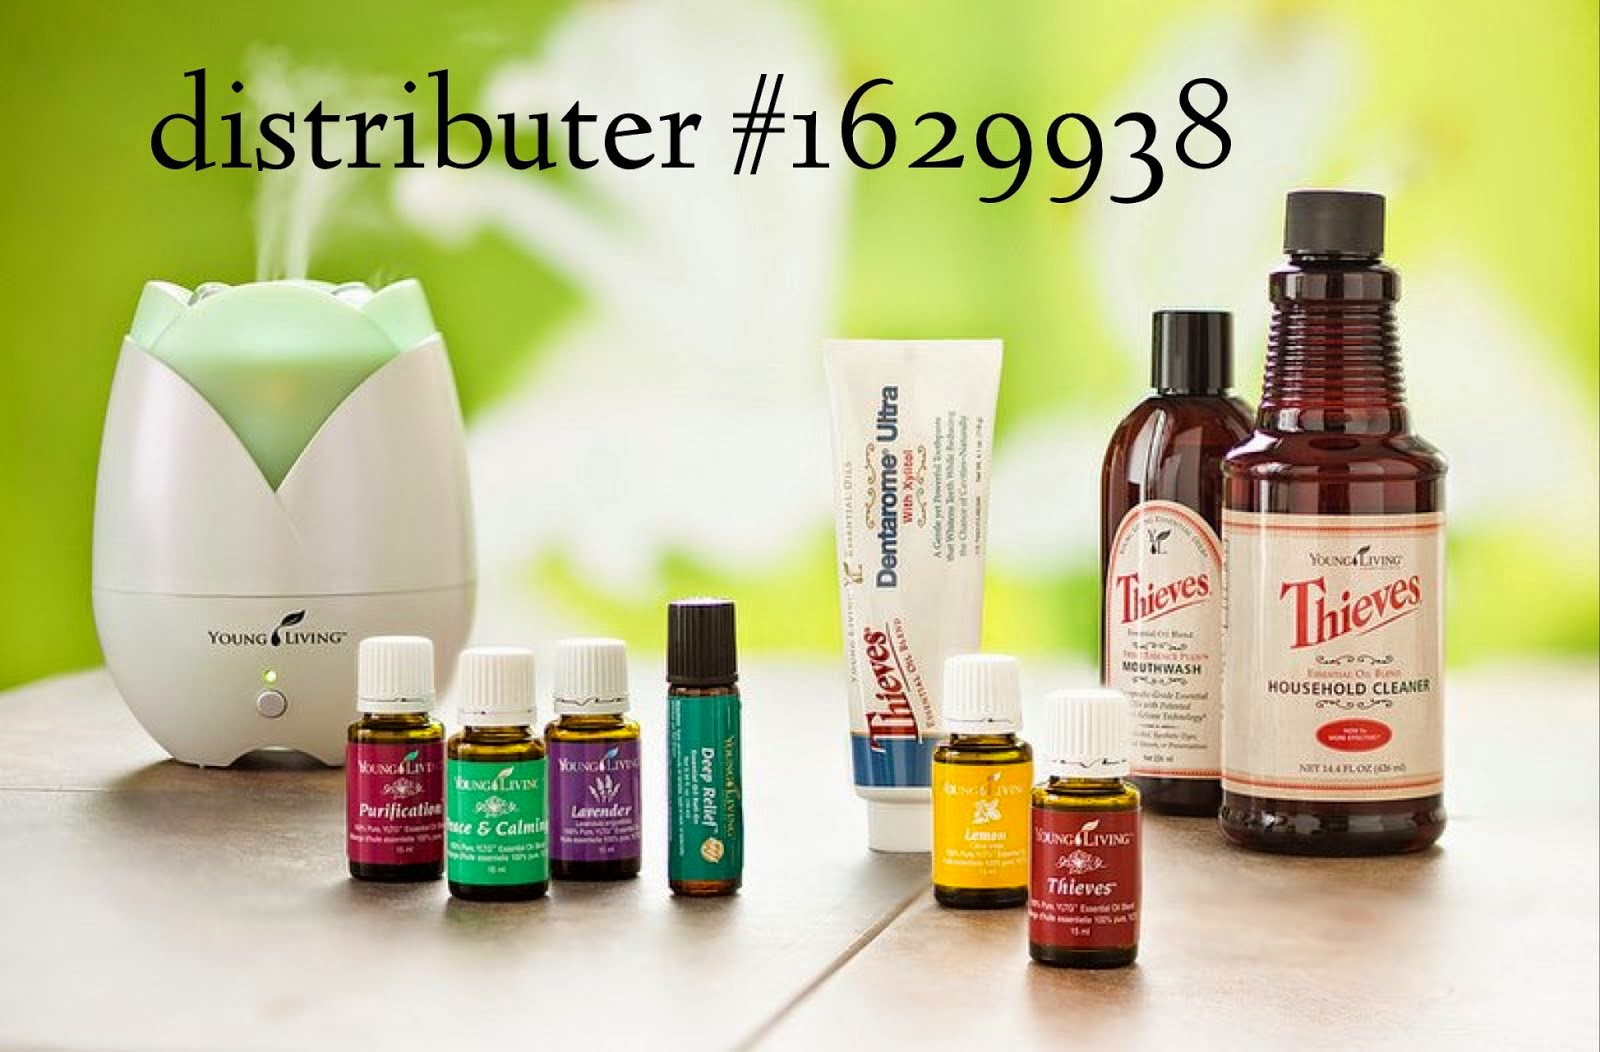 i'm a young living distributer!